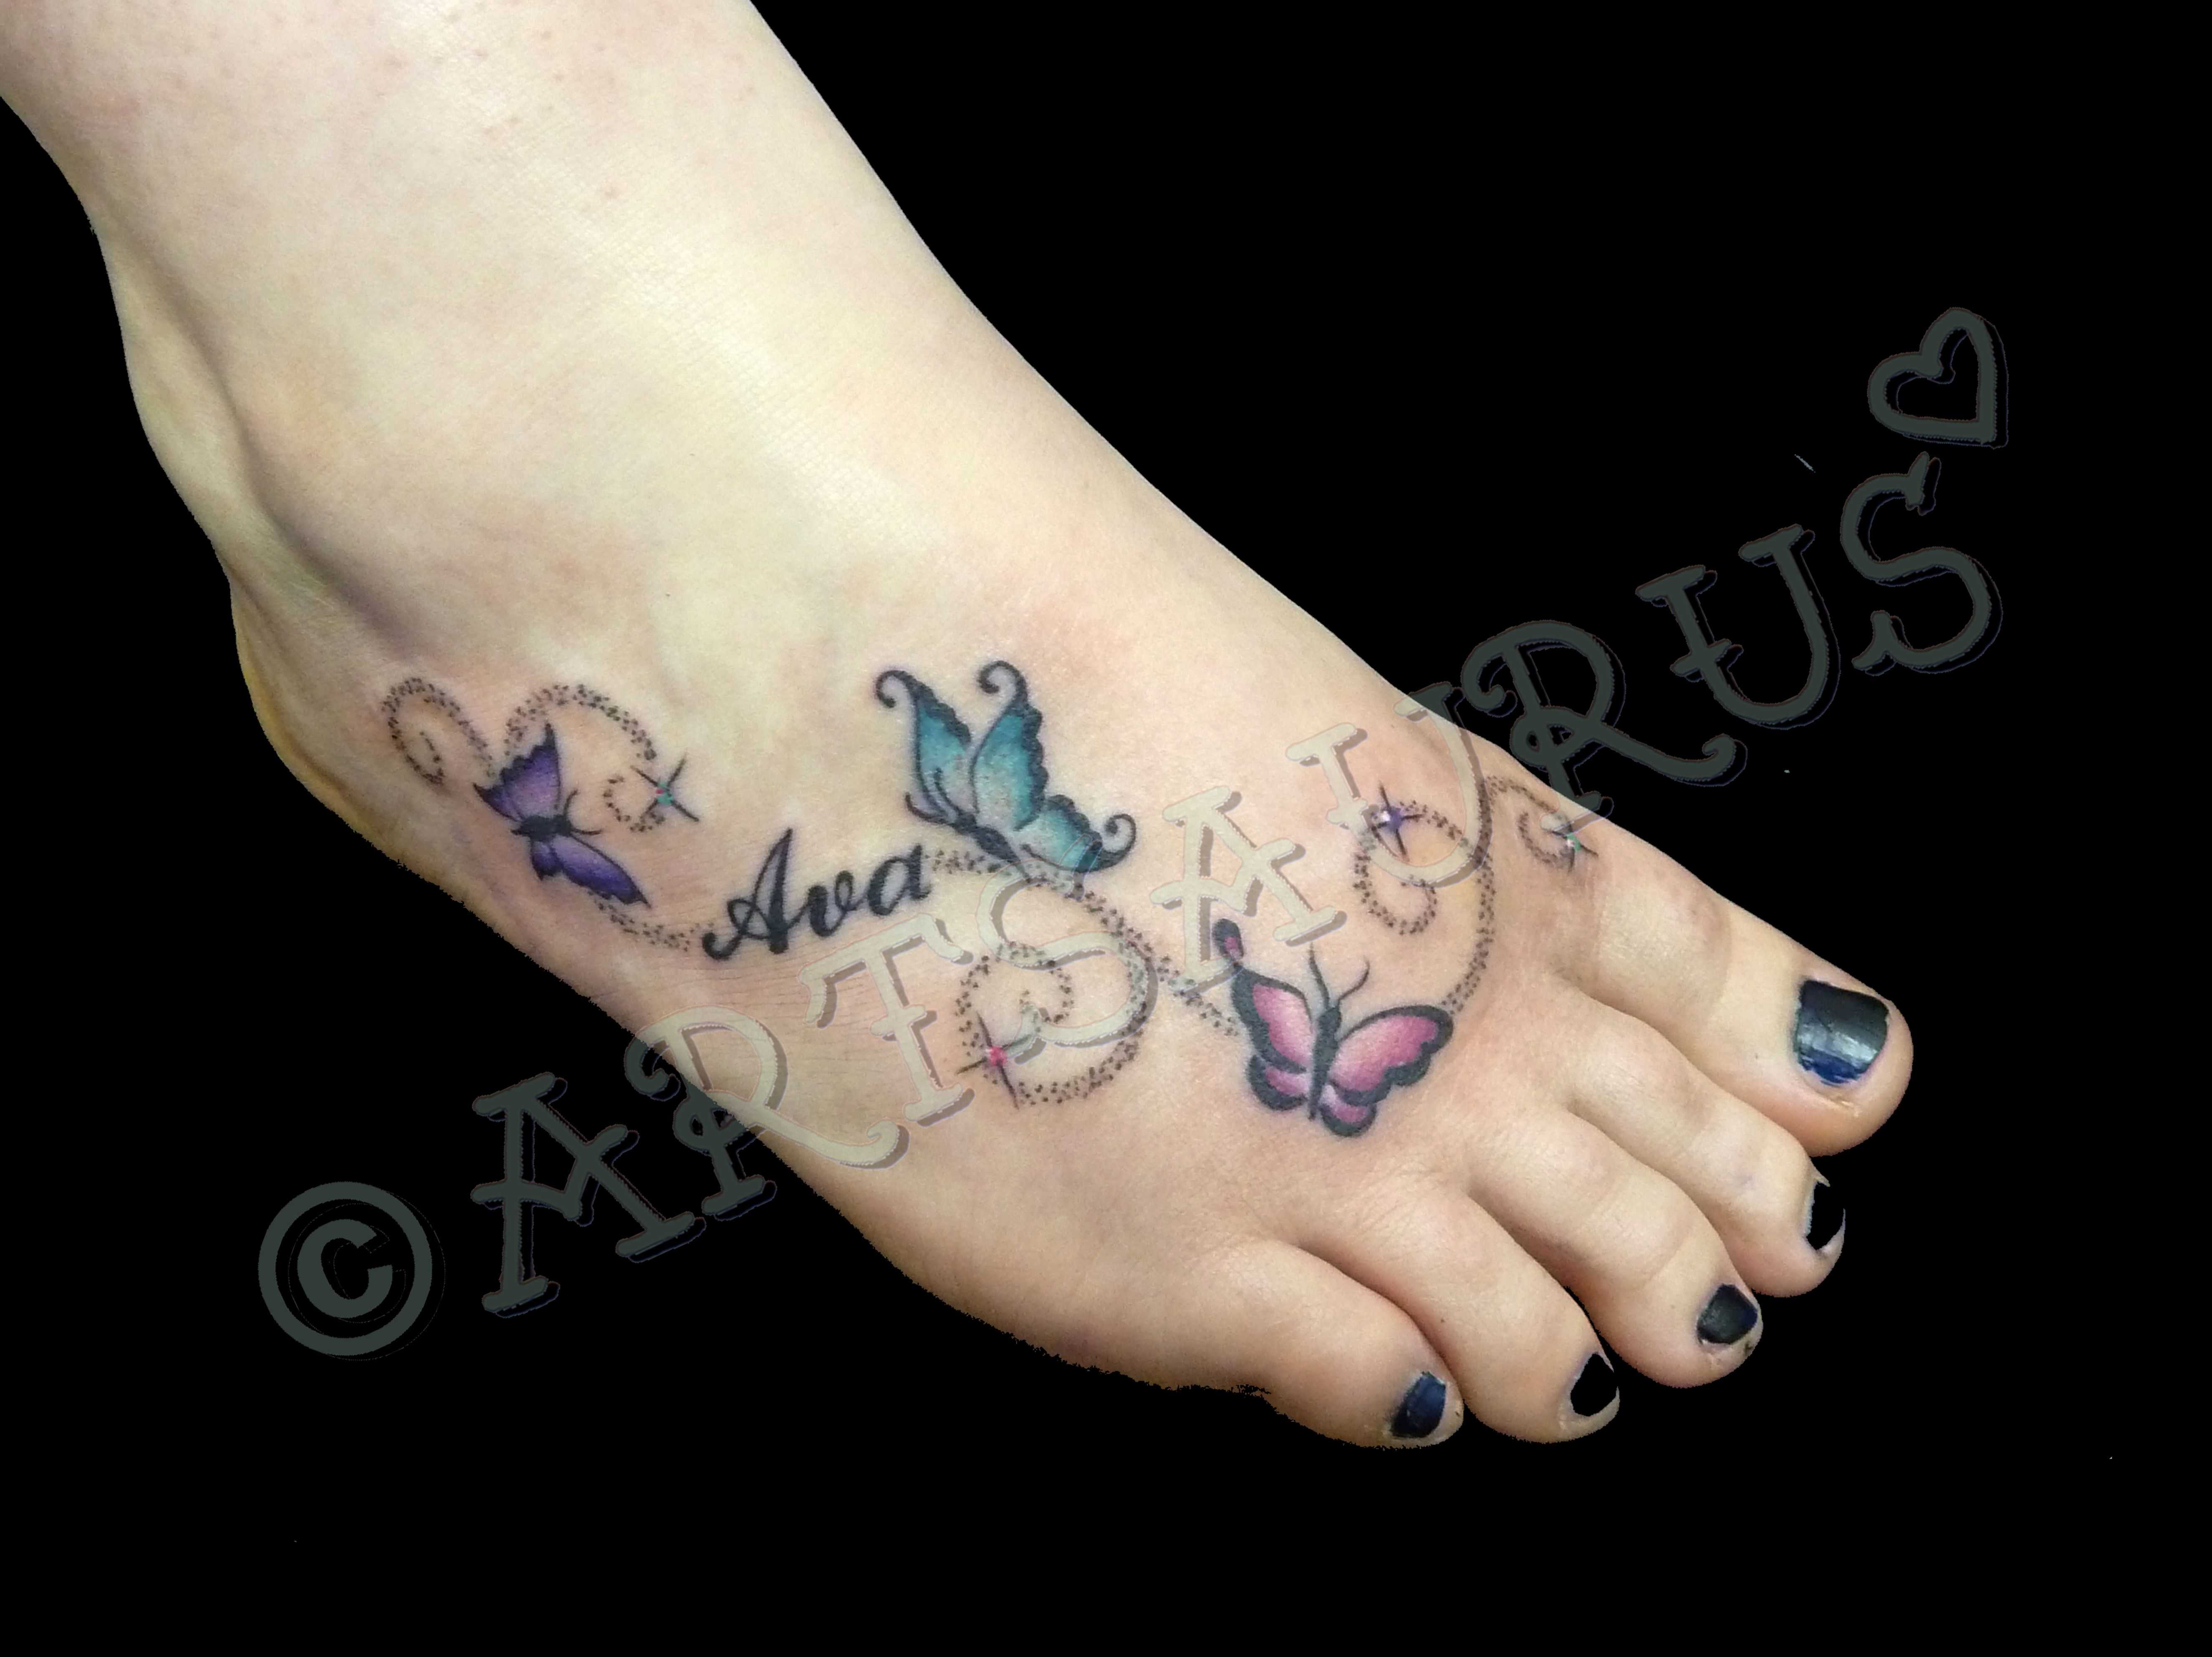 Leave a comment tags Butterfly Foot girly stars name